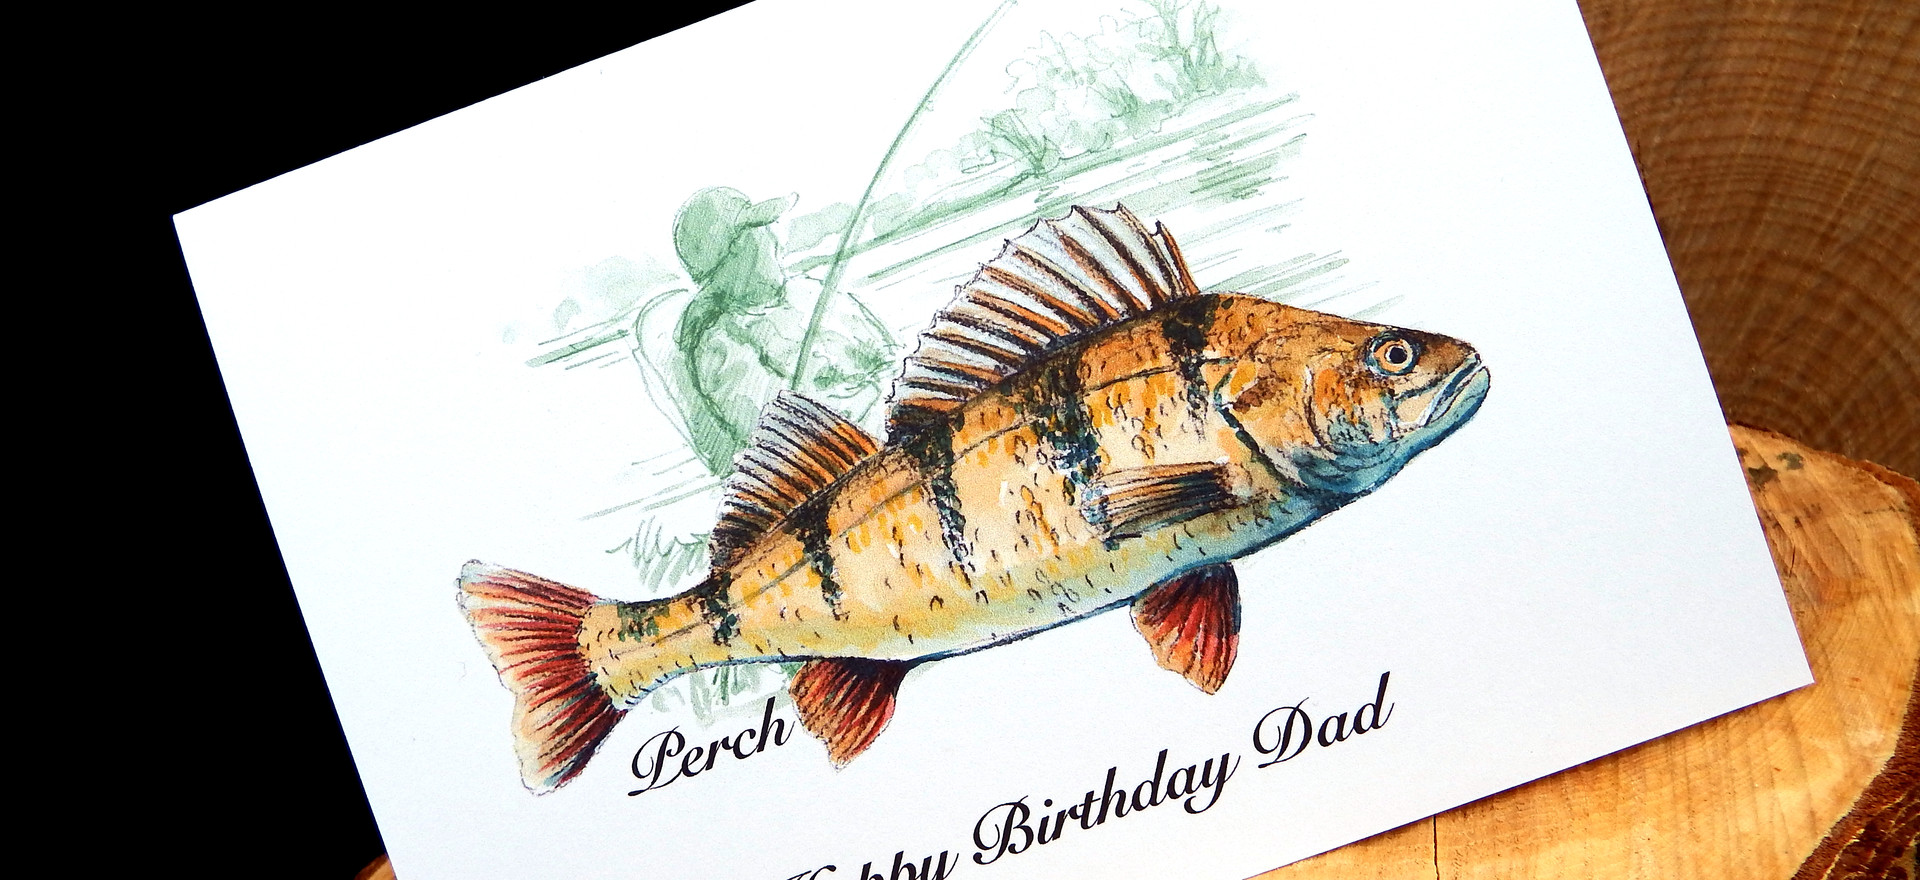 Perch - Happy Birthday Dad